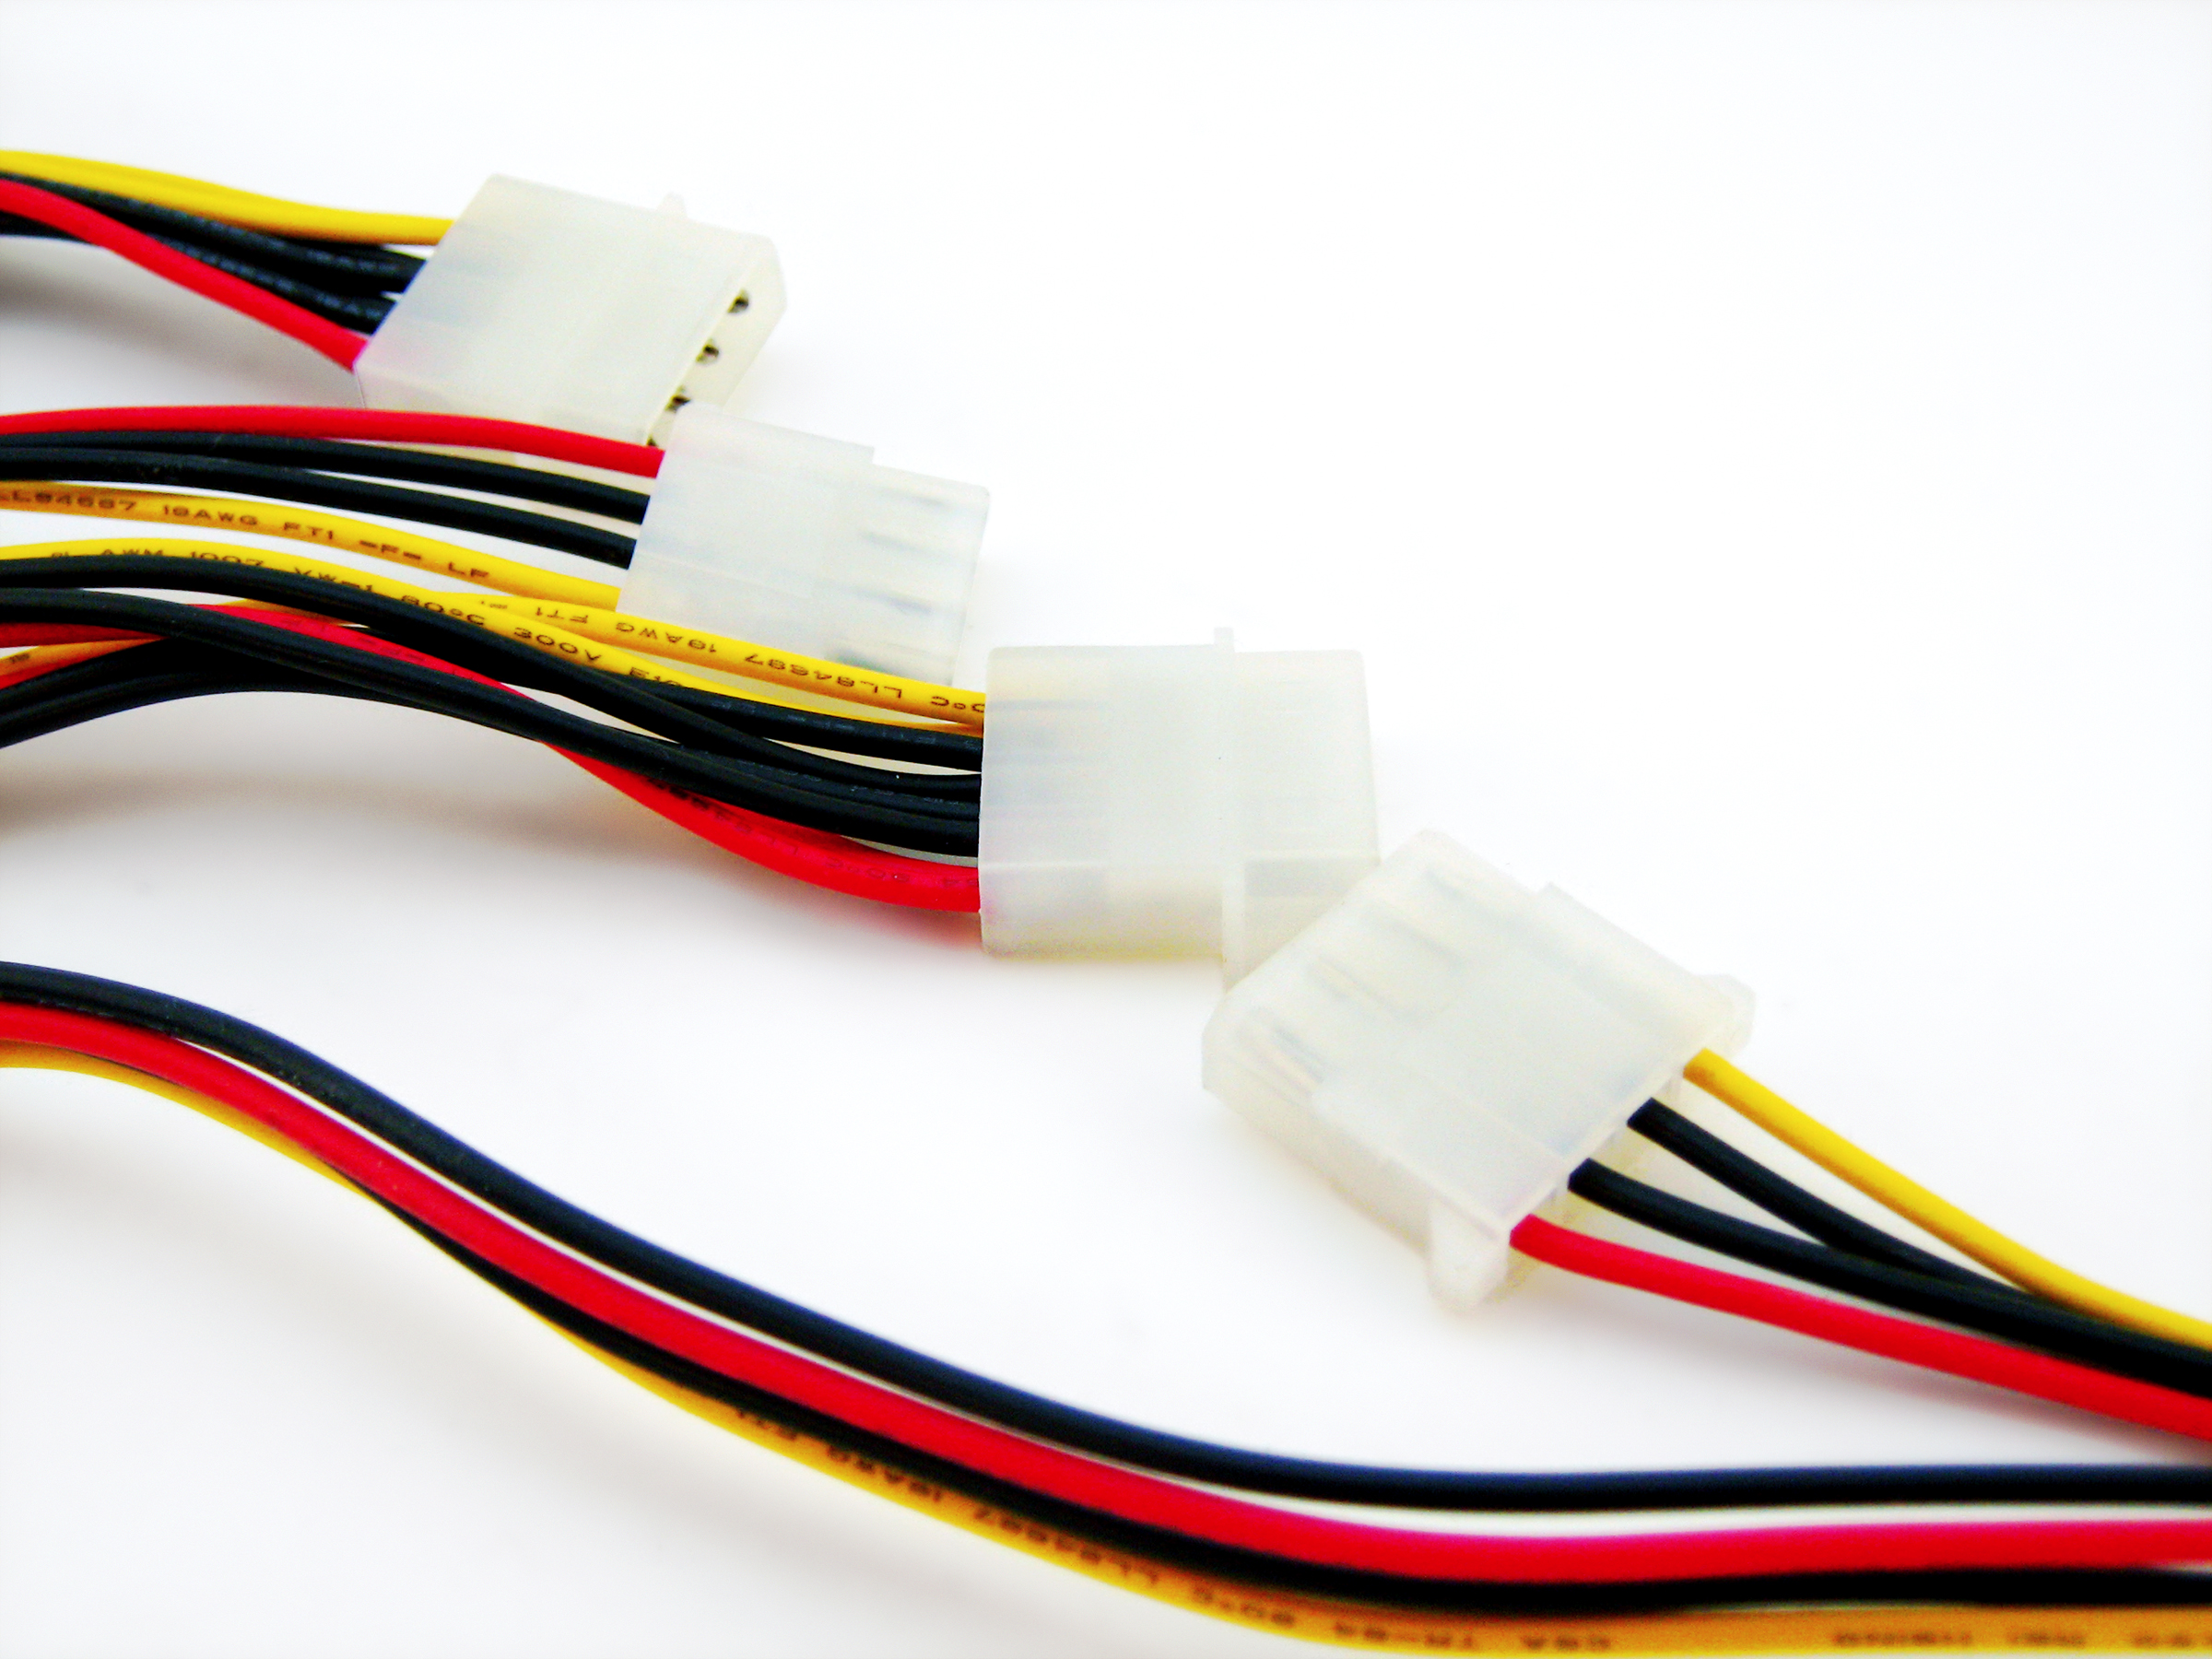 PC Power Cable, Cable, Interconnect, Switch, Power, HQ Photo